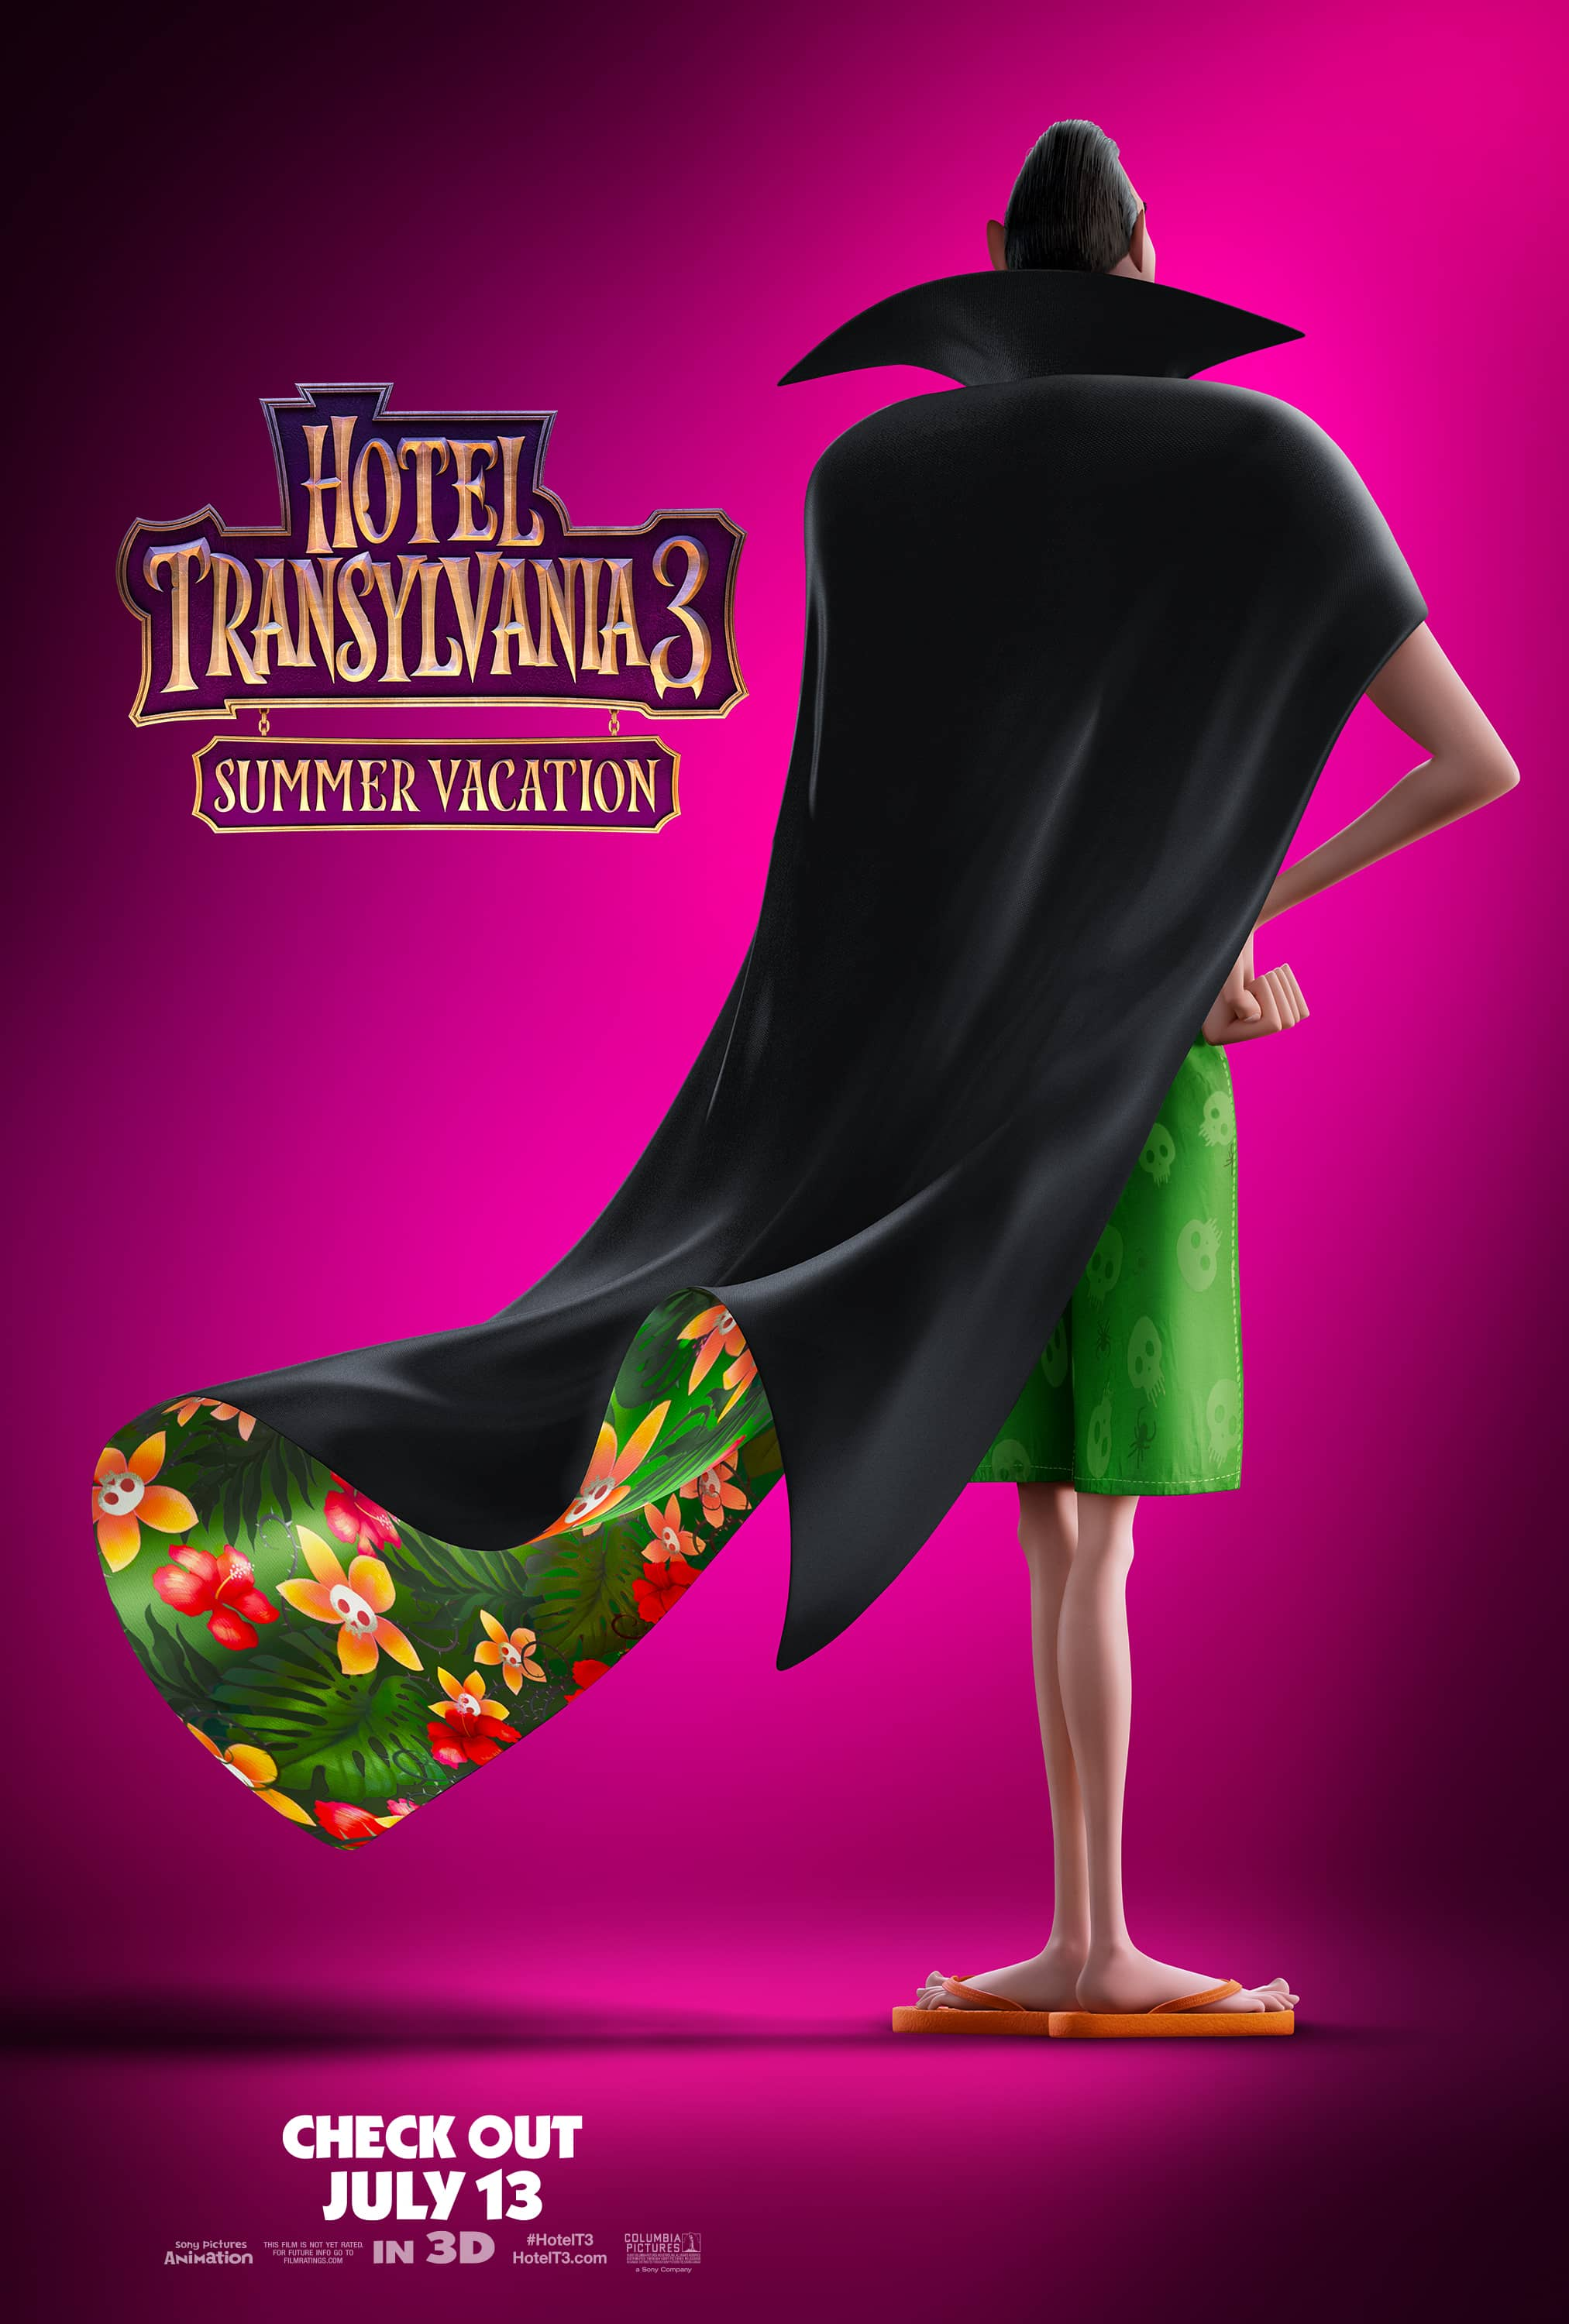 Movie-Night-Hotel-Transylvania-3